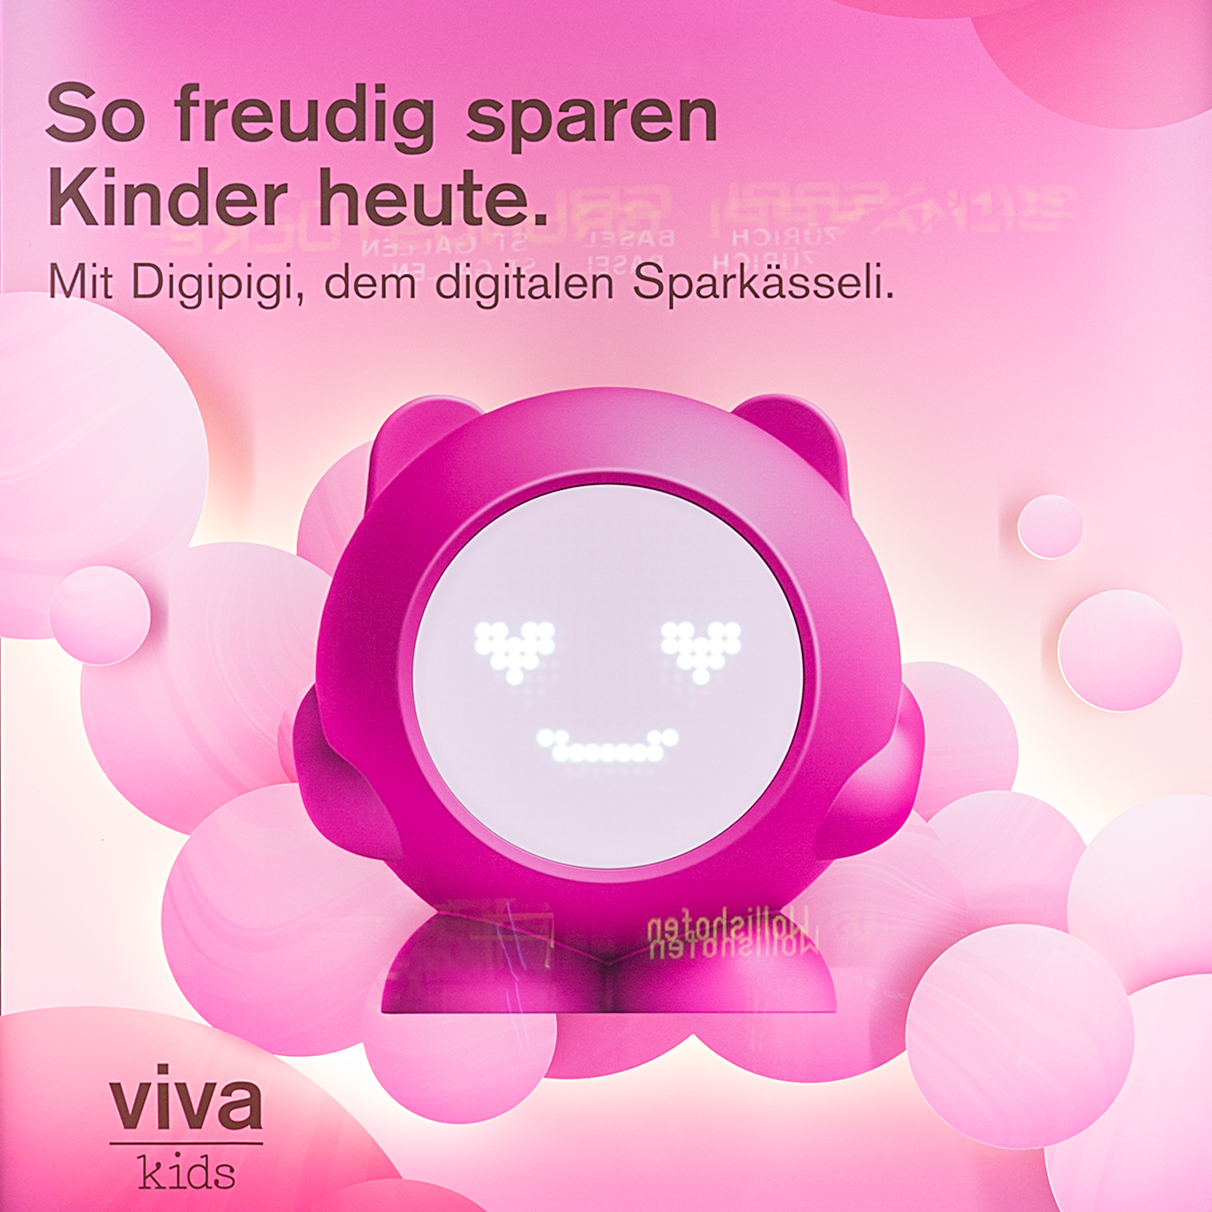 Credit Suisse Schaufenster Digipigi